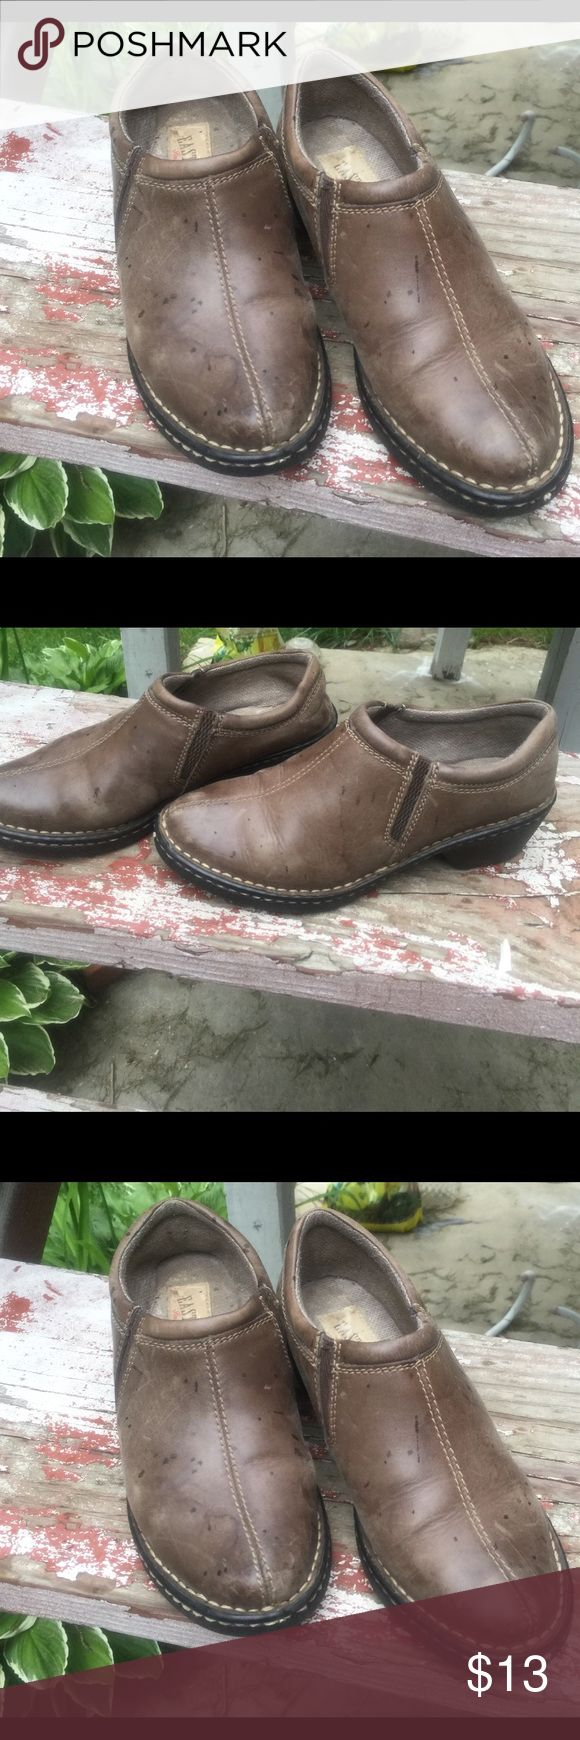 Shoes size 6M Eastland leather shoes size6 m. Used. Good condition Eastland Shoes Mules & Clogs